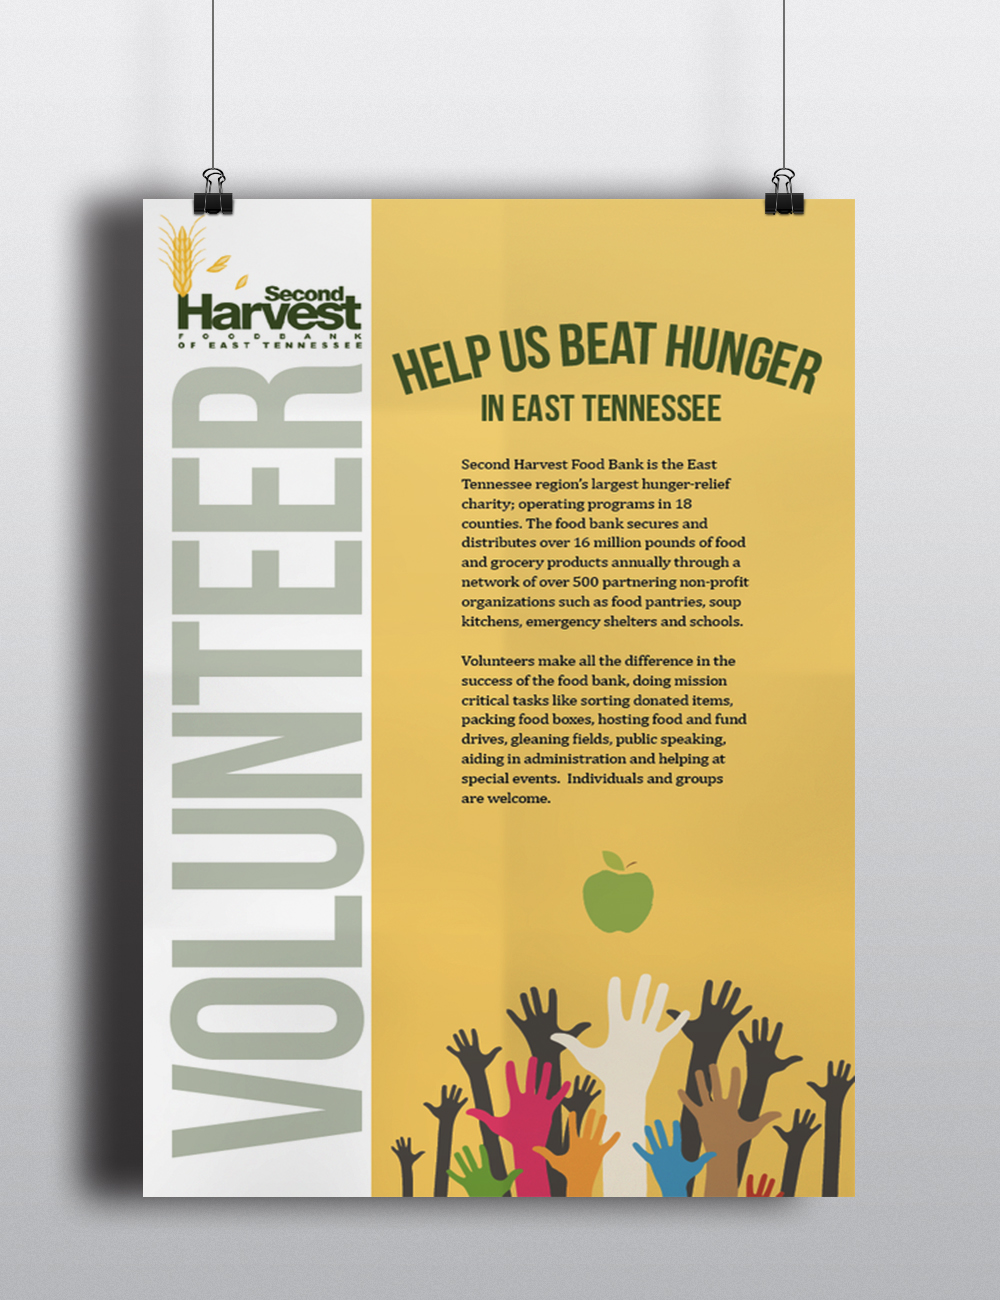 Volunteer for Second Harvest - Poster created in Adobe InDesign - class project